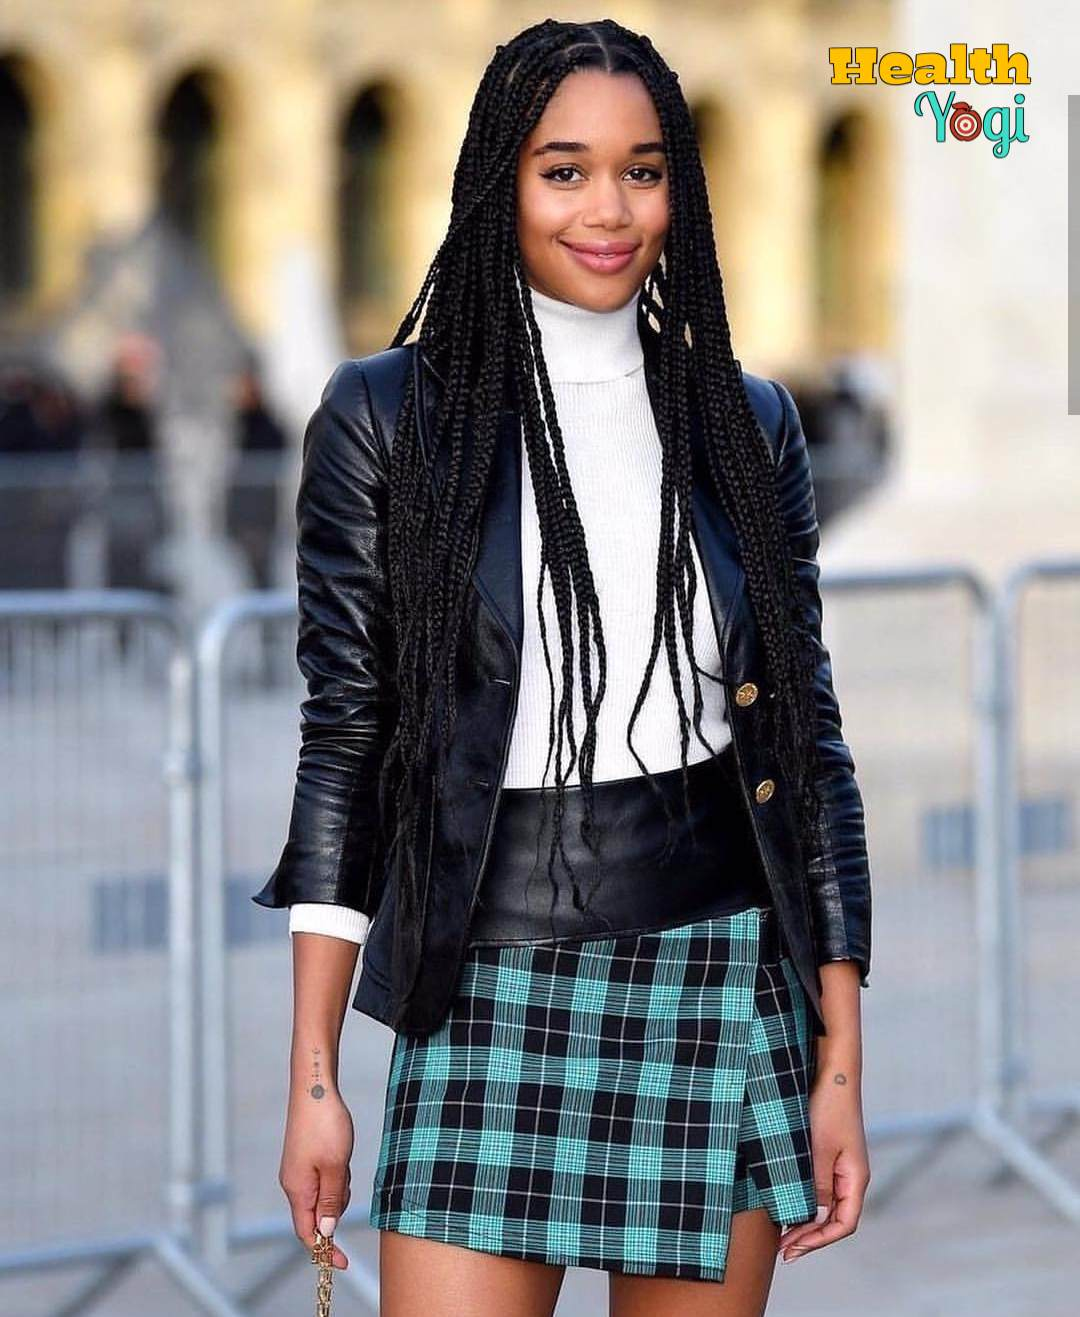 Laura Harrier Workout Routine and Diet Plan